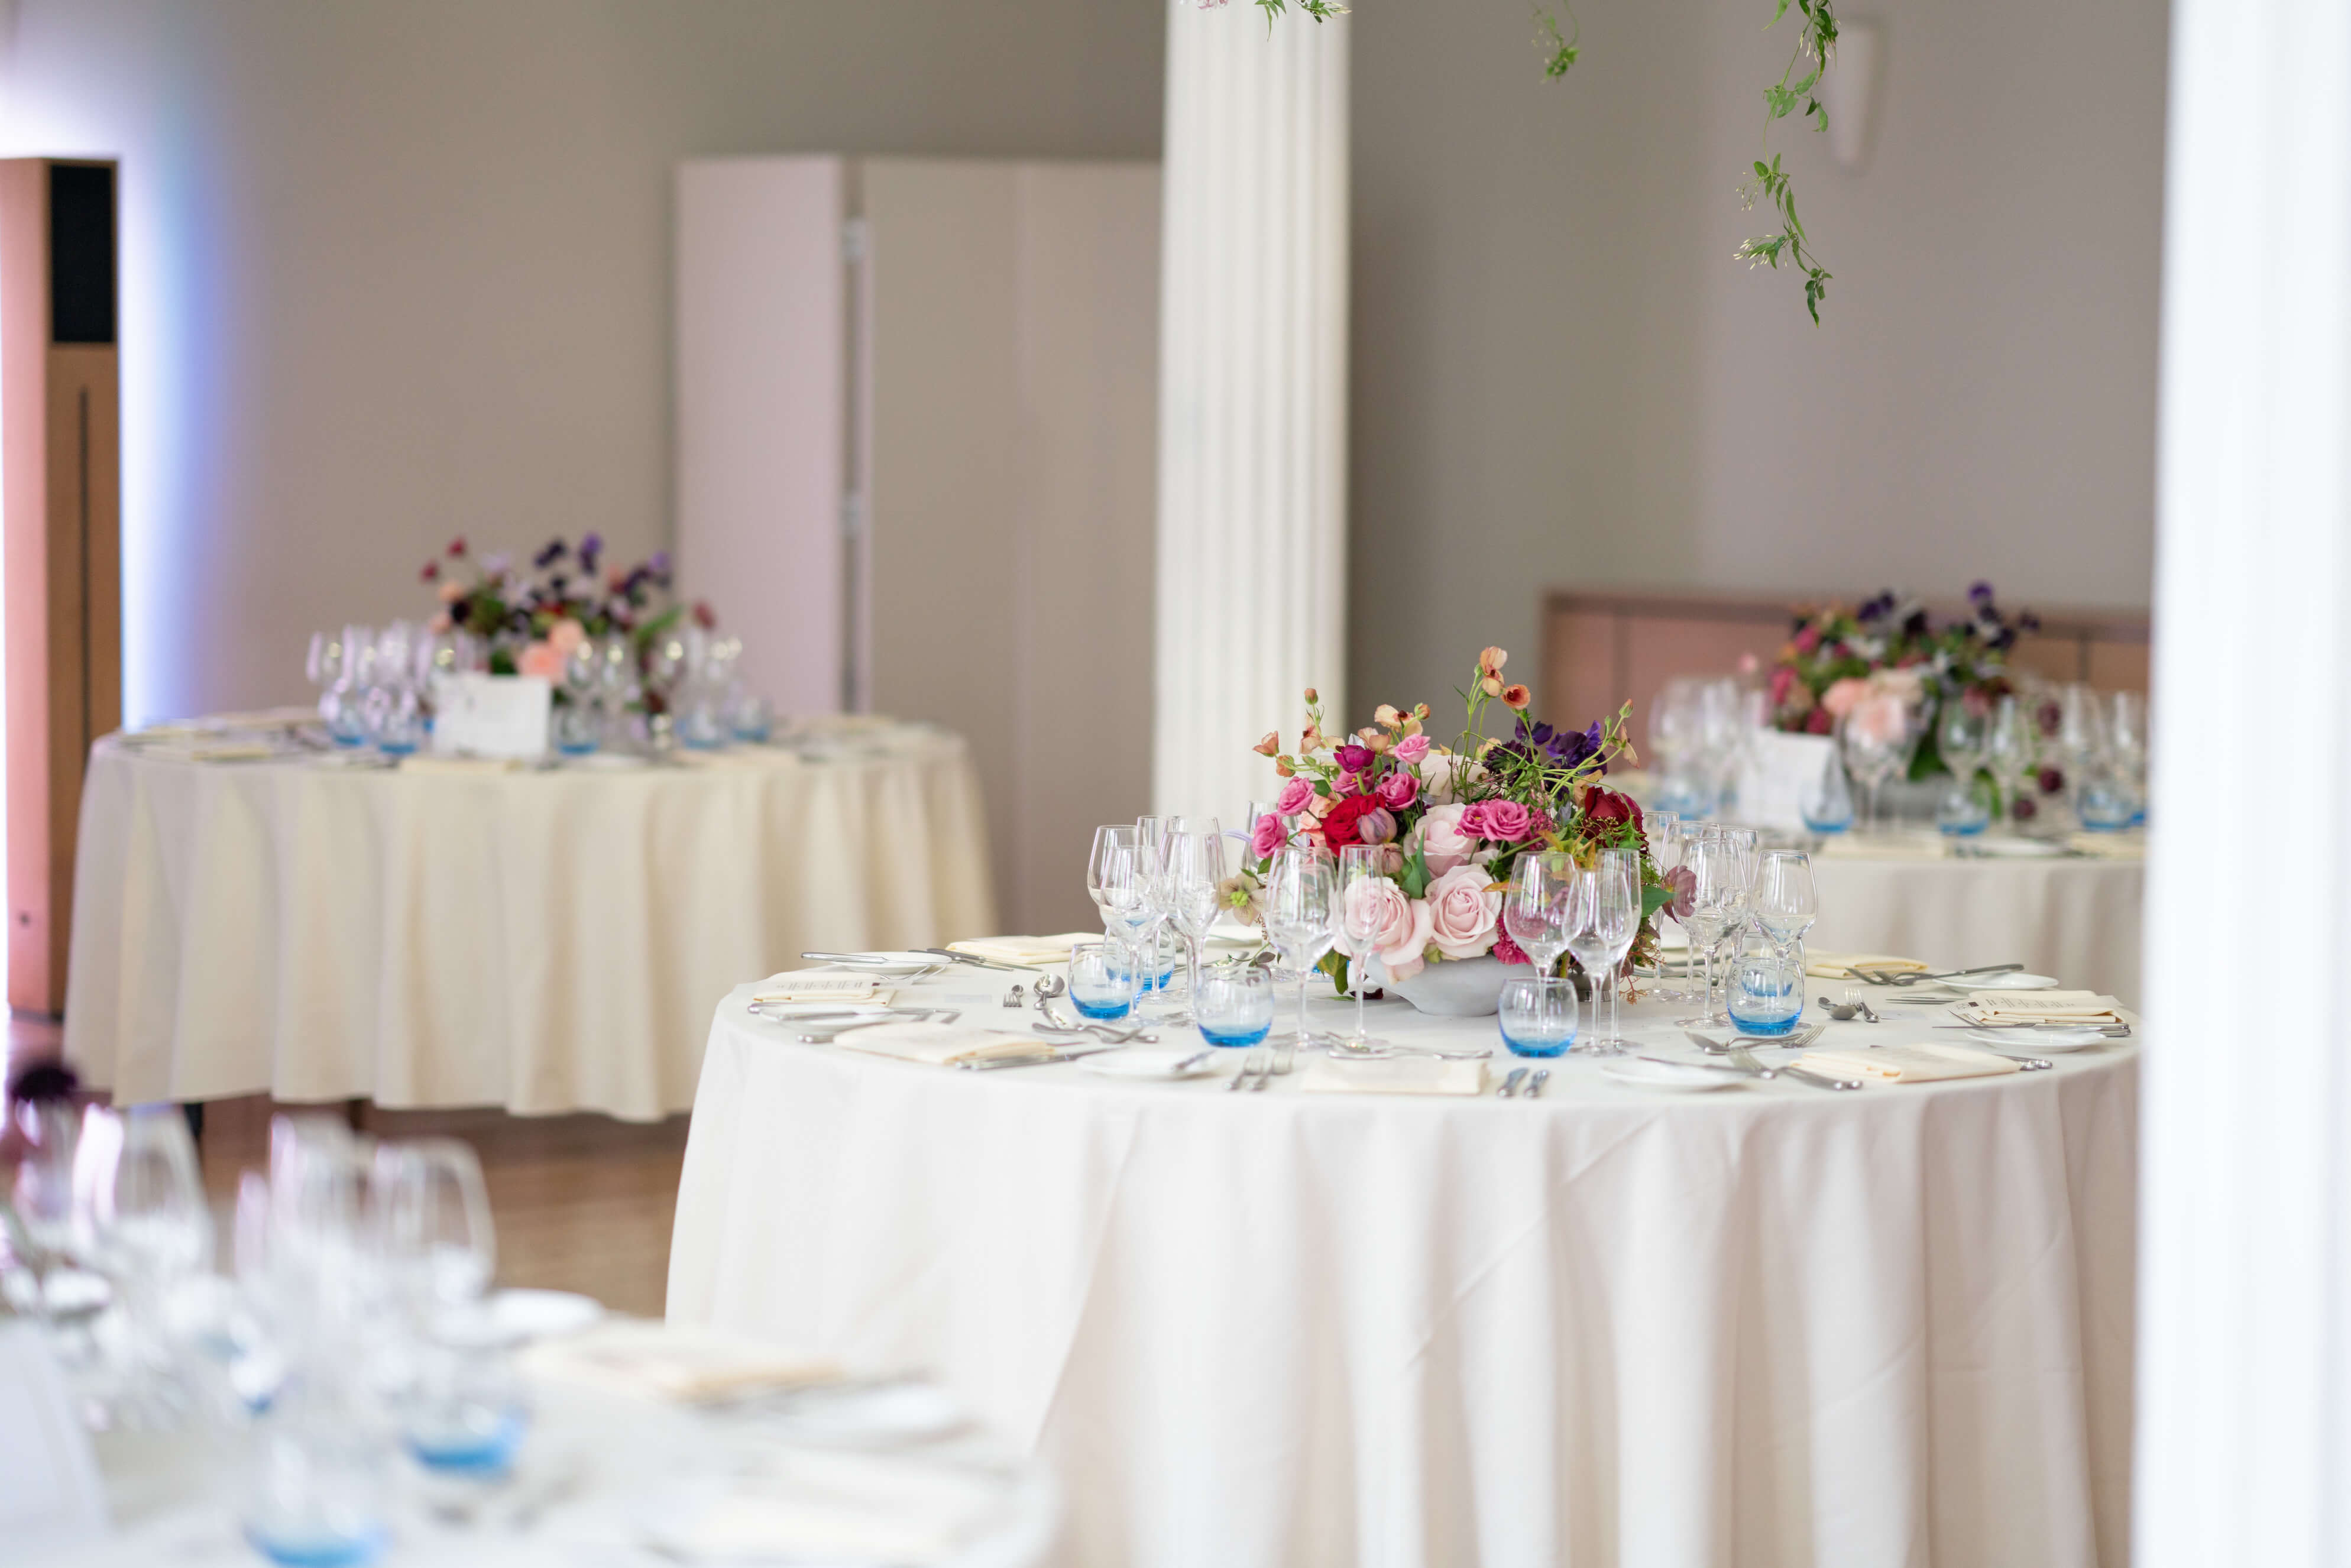 Tables with wedding flowers